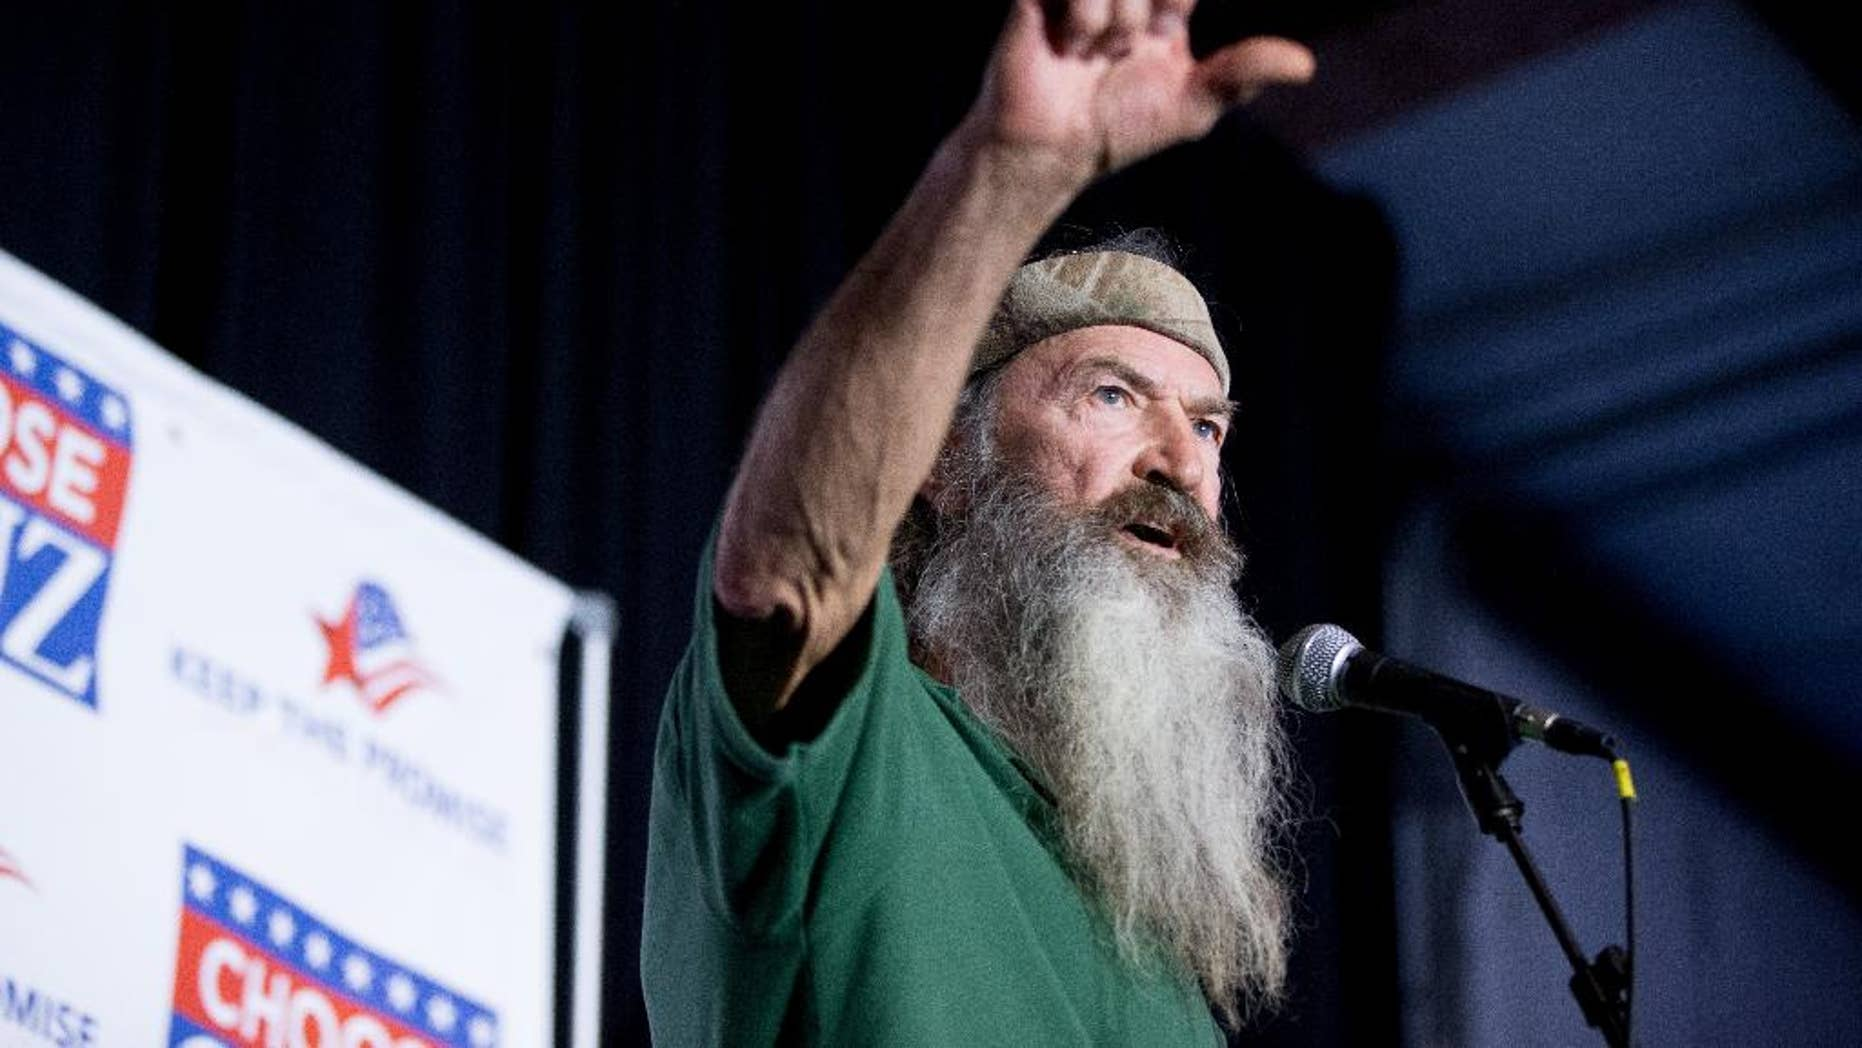 """FILE - In this Feb. 19, 2016 file photo, Phil Robertson of the Duck Dynasty reality television program speaks at a rally for Republican presidential candidate, Sen. Ted Cruz, R-Texas, at Eagle Aviation Hangar in Columbia, S.C. Robertson has again clouded NASCAR's image as a sport trying to remove itself from its divisive stereotypes. Robertson called for a """"Jesus man in the White House"""" during what was supposed to be a simple prayer before the race at Texas Motor Speedway on Saturday, April 9. (AP Photo/Andrew Harnik, File)"""